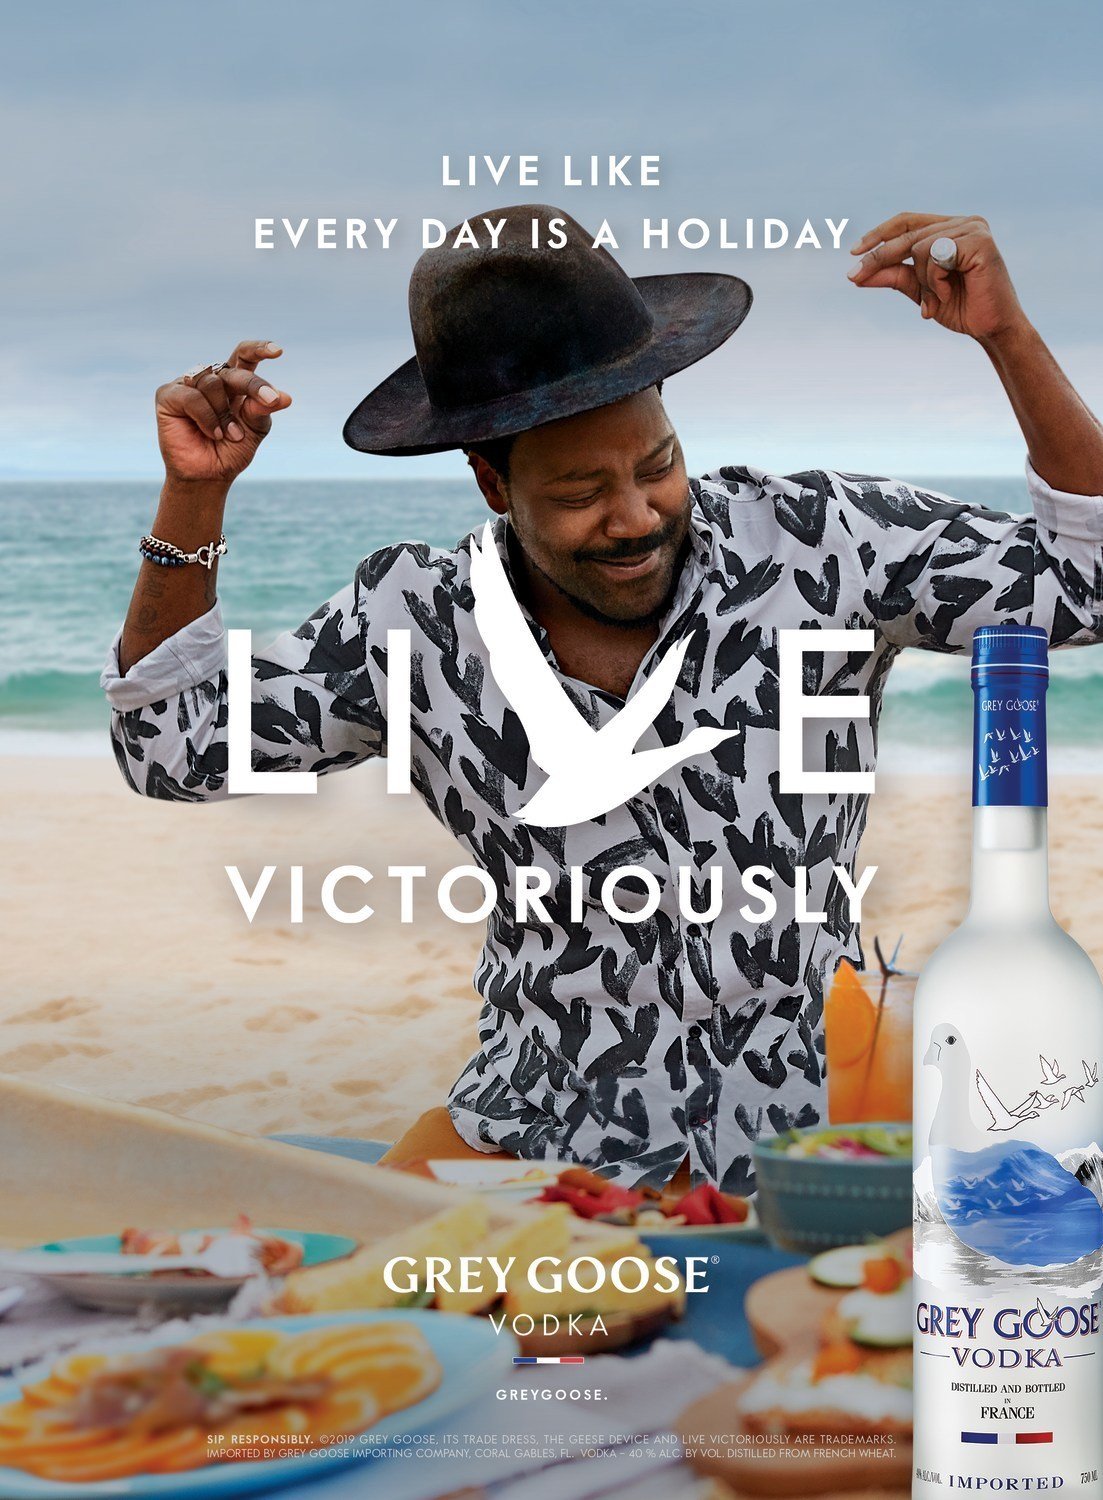 GREY GOOSE unleashes 'Live Victoriously' global campaign